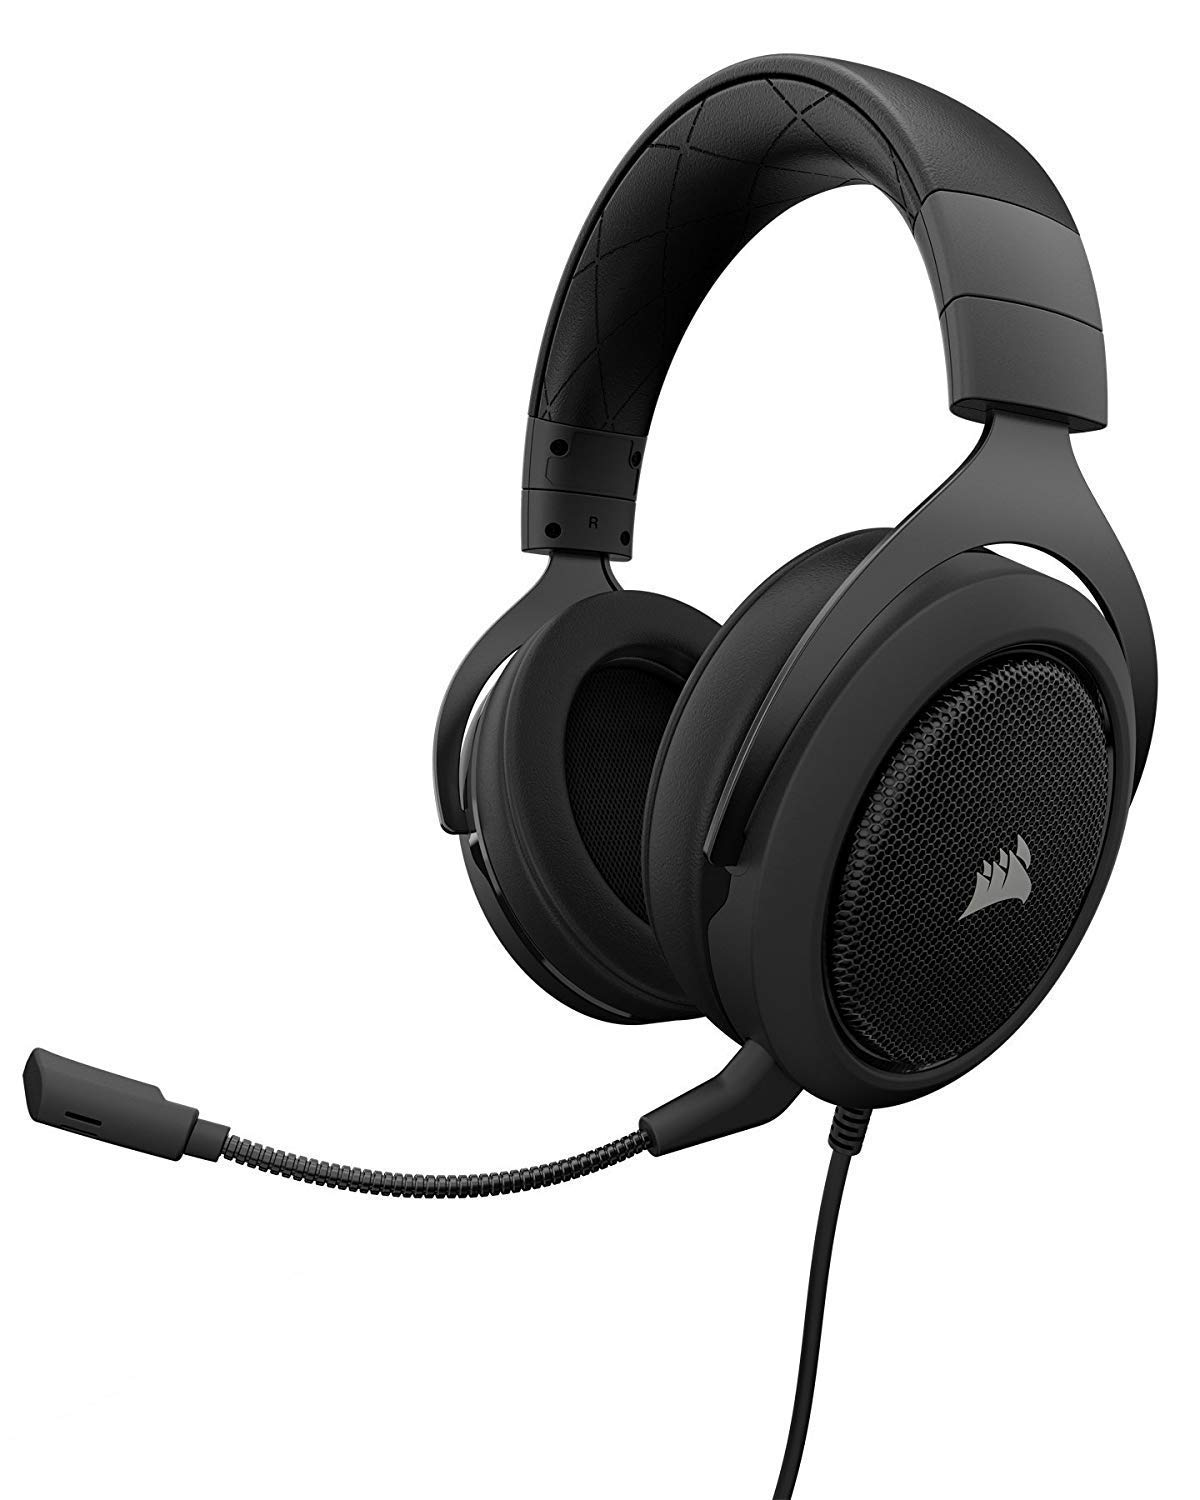 CORSAIR HS50 - Stereo Gaming Headset - Discord Headphones - Carbon (Renewed) by Corsair